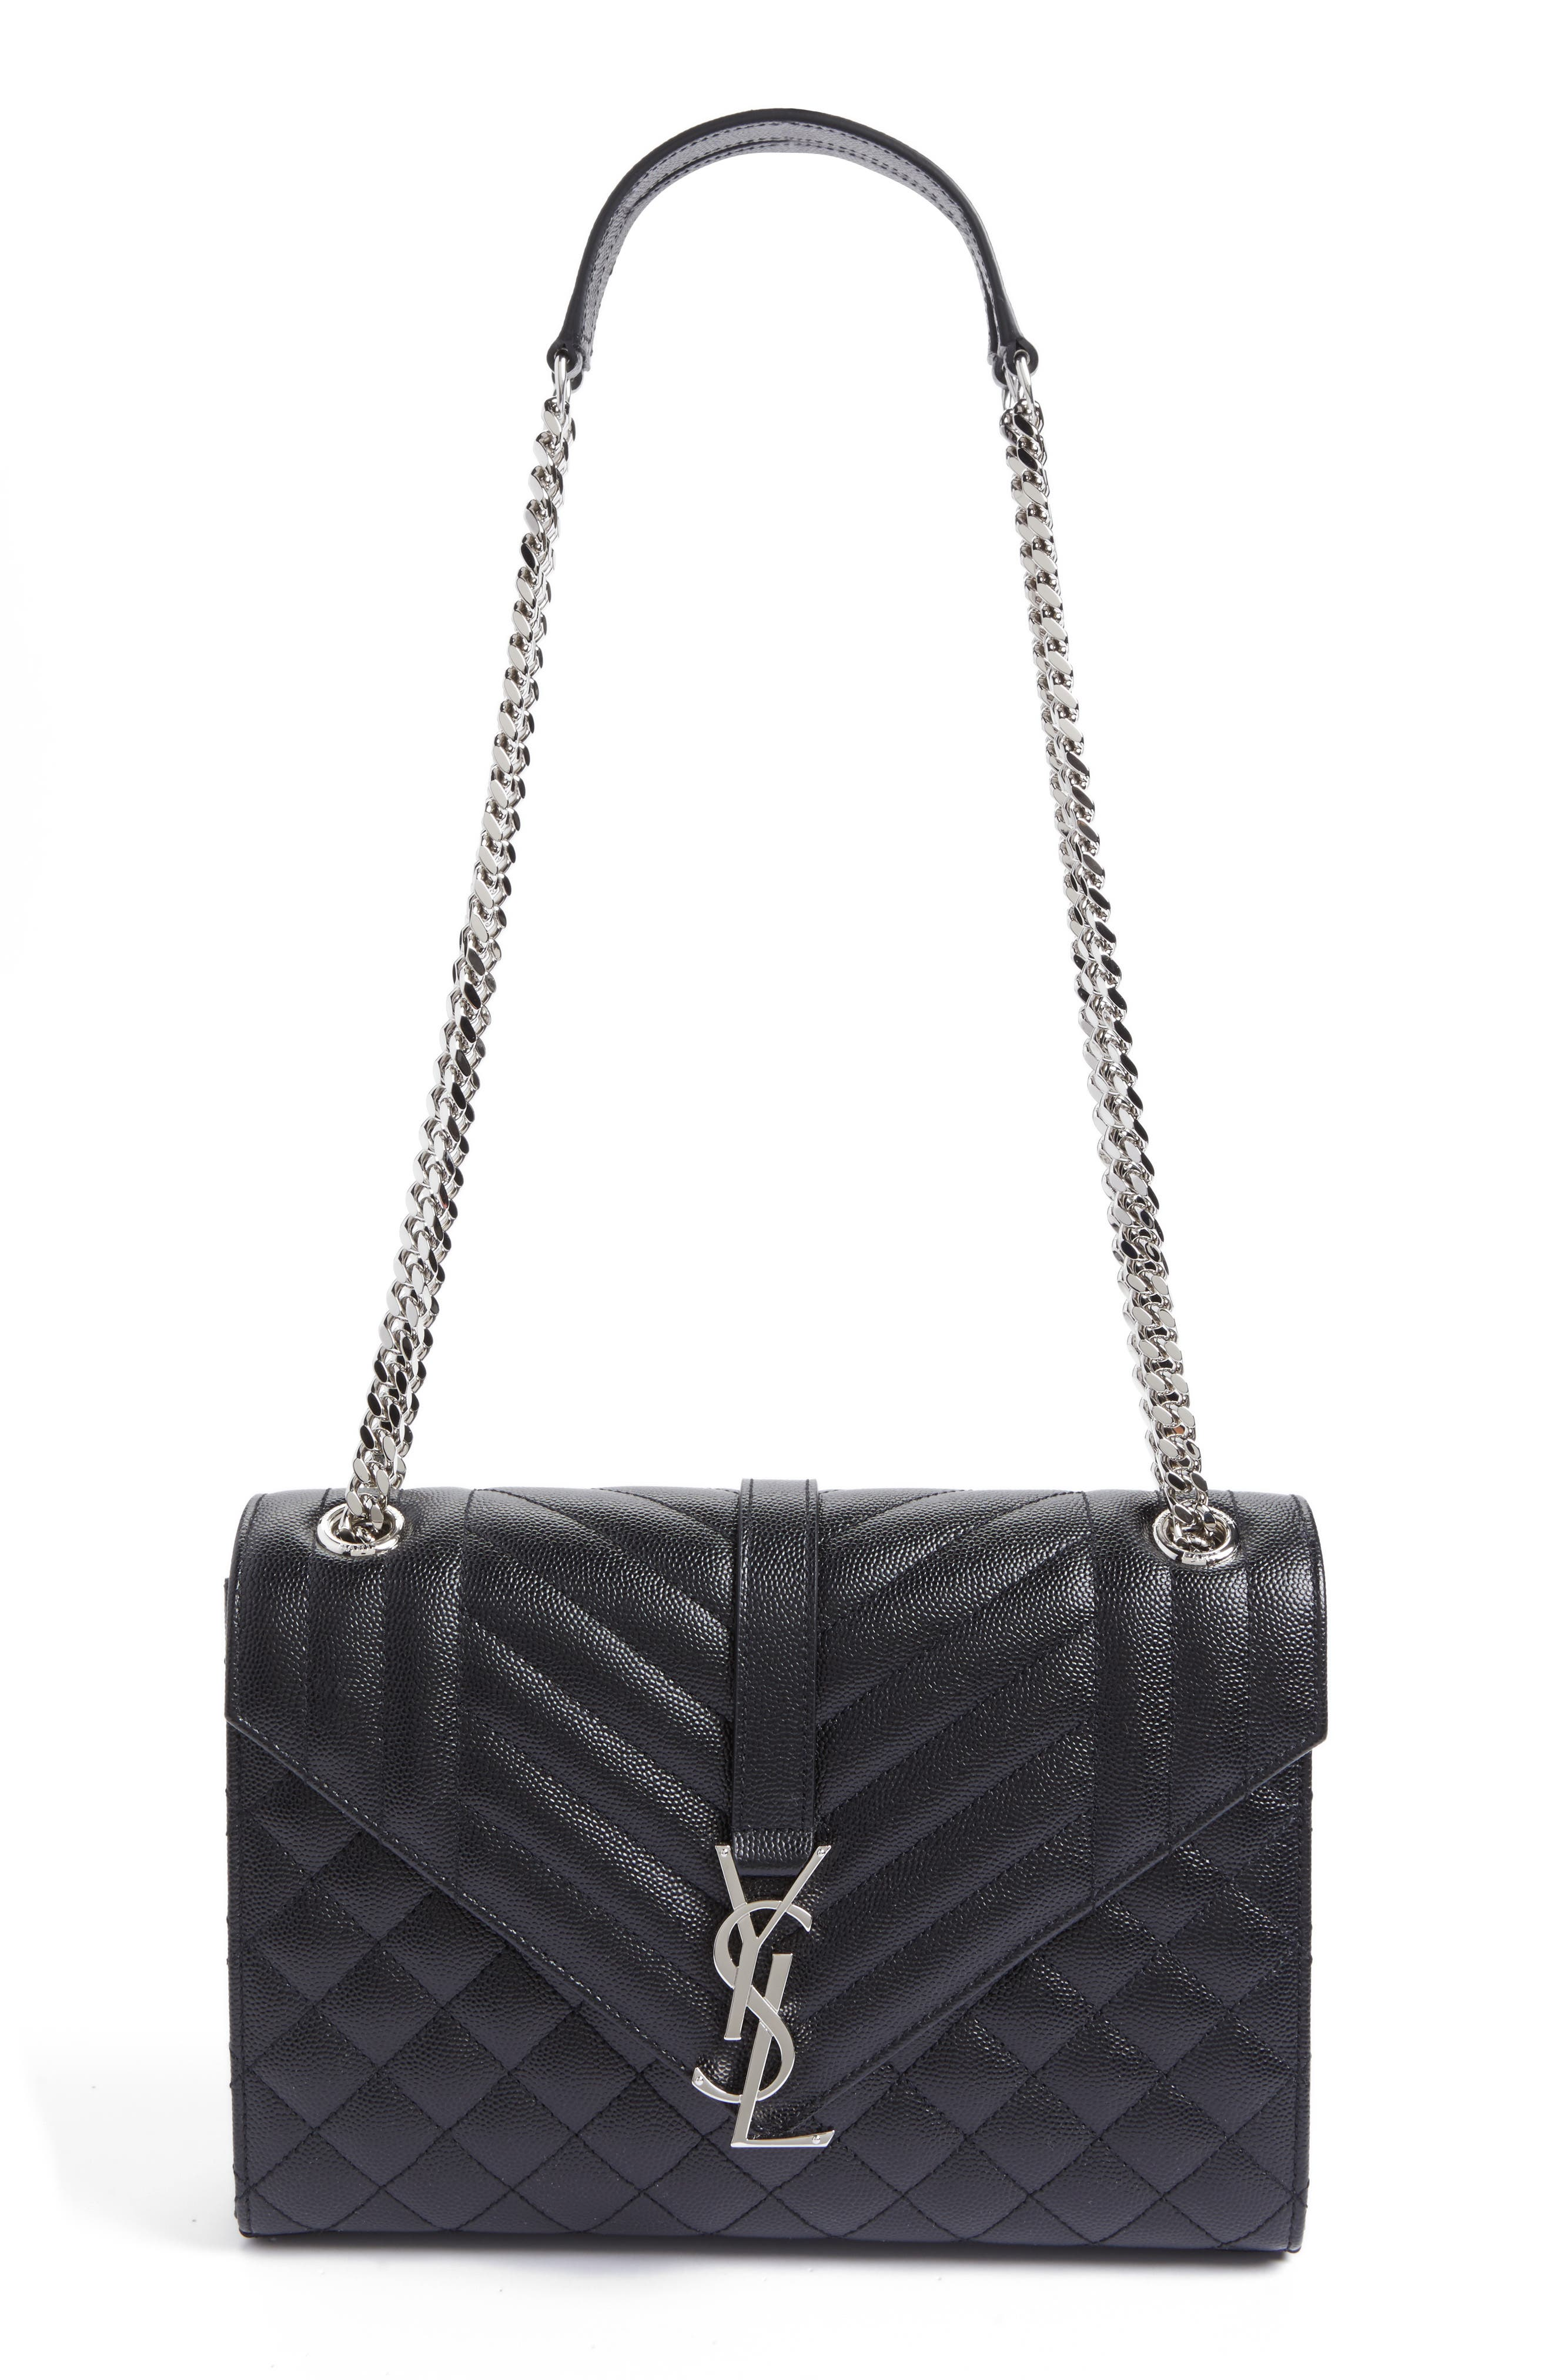 Medium Monogram Quilted Leather Shoulder Bag,                             Main thumbnail 1, color,                             NERO